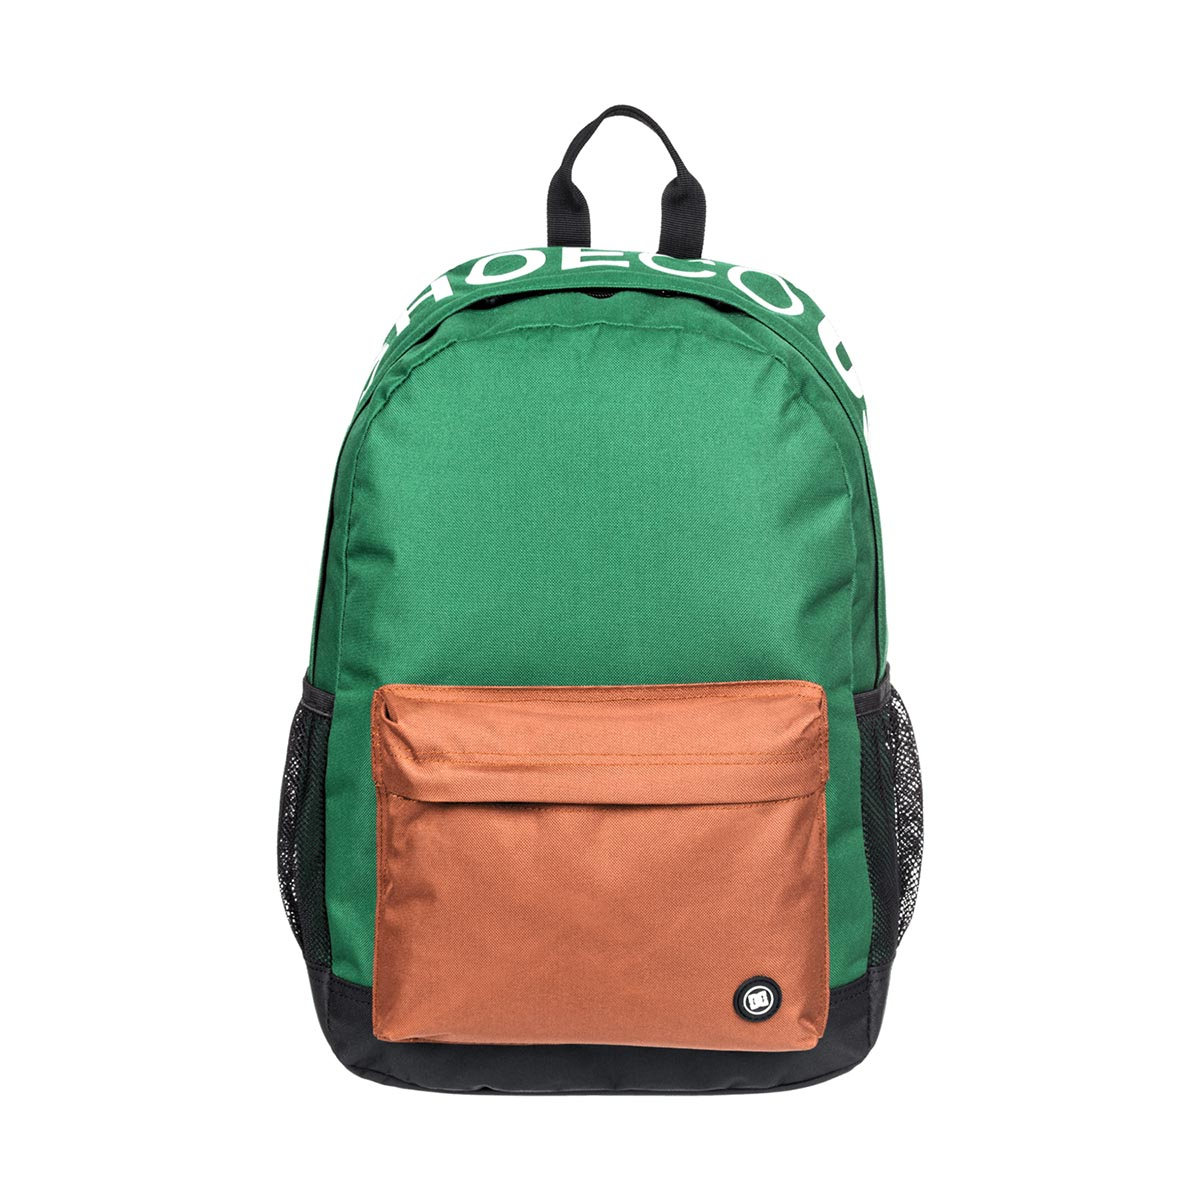 DC - BACKSIDER MEDIUM BACKPACK 18,5 L